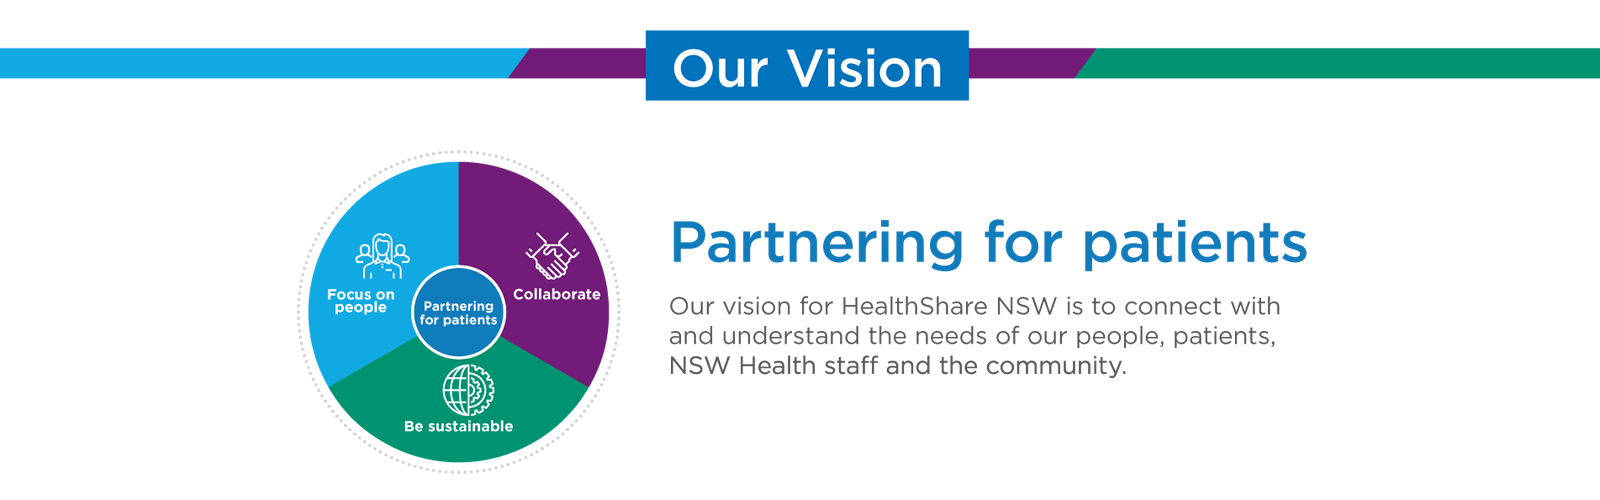 Partnering for patients. Our vision for HealthShare NSW is to connect with and understand the needs of our people, patients, NSW Health staff and the community.